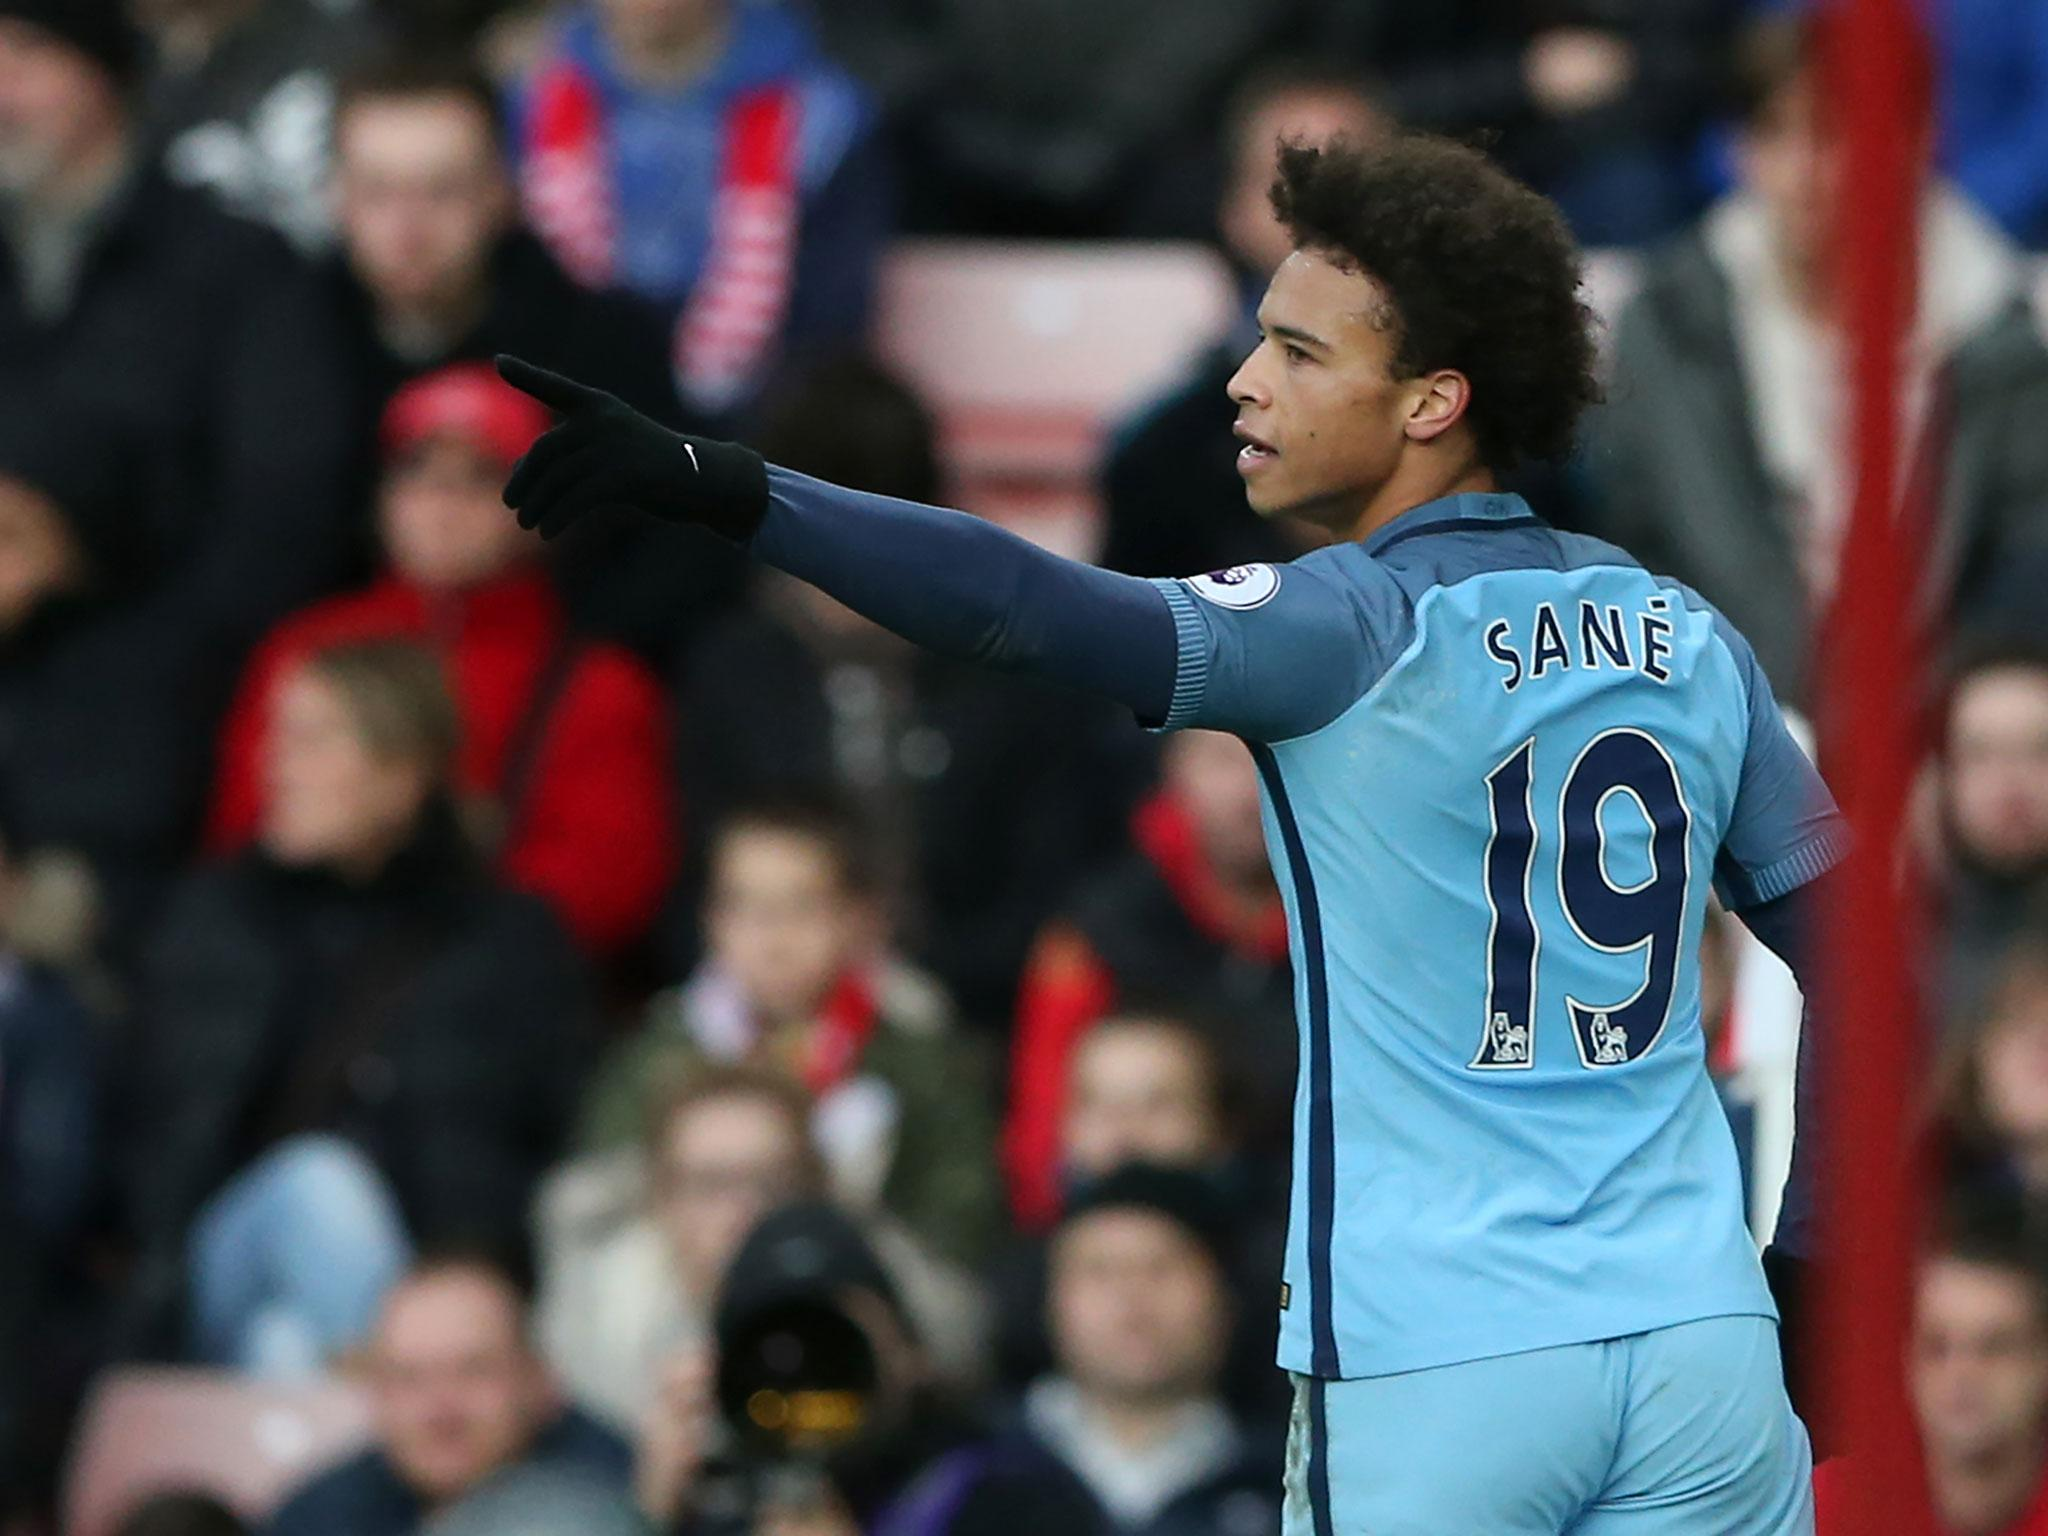 Pep Guardiola heaps praise on in form Manchester City star Leroy